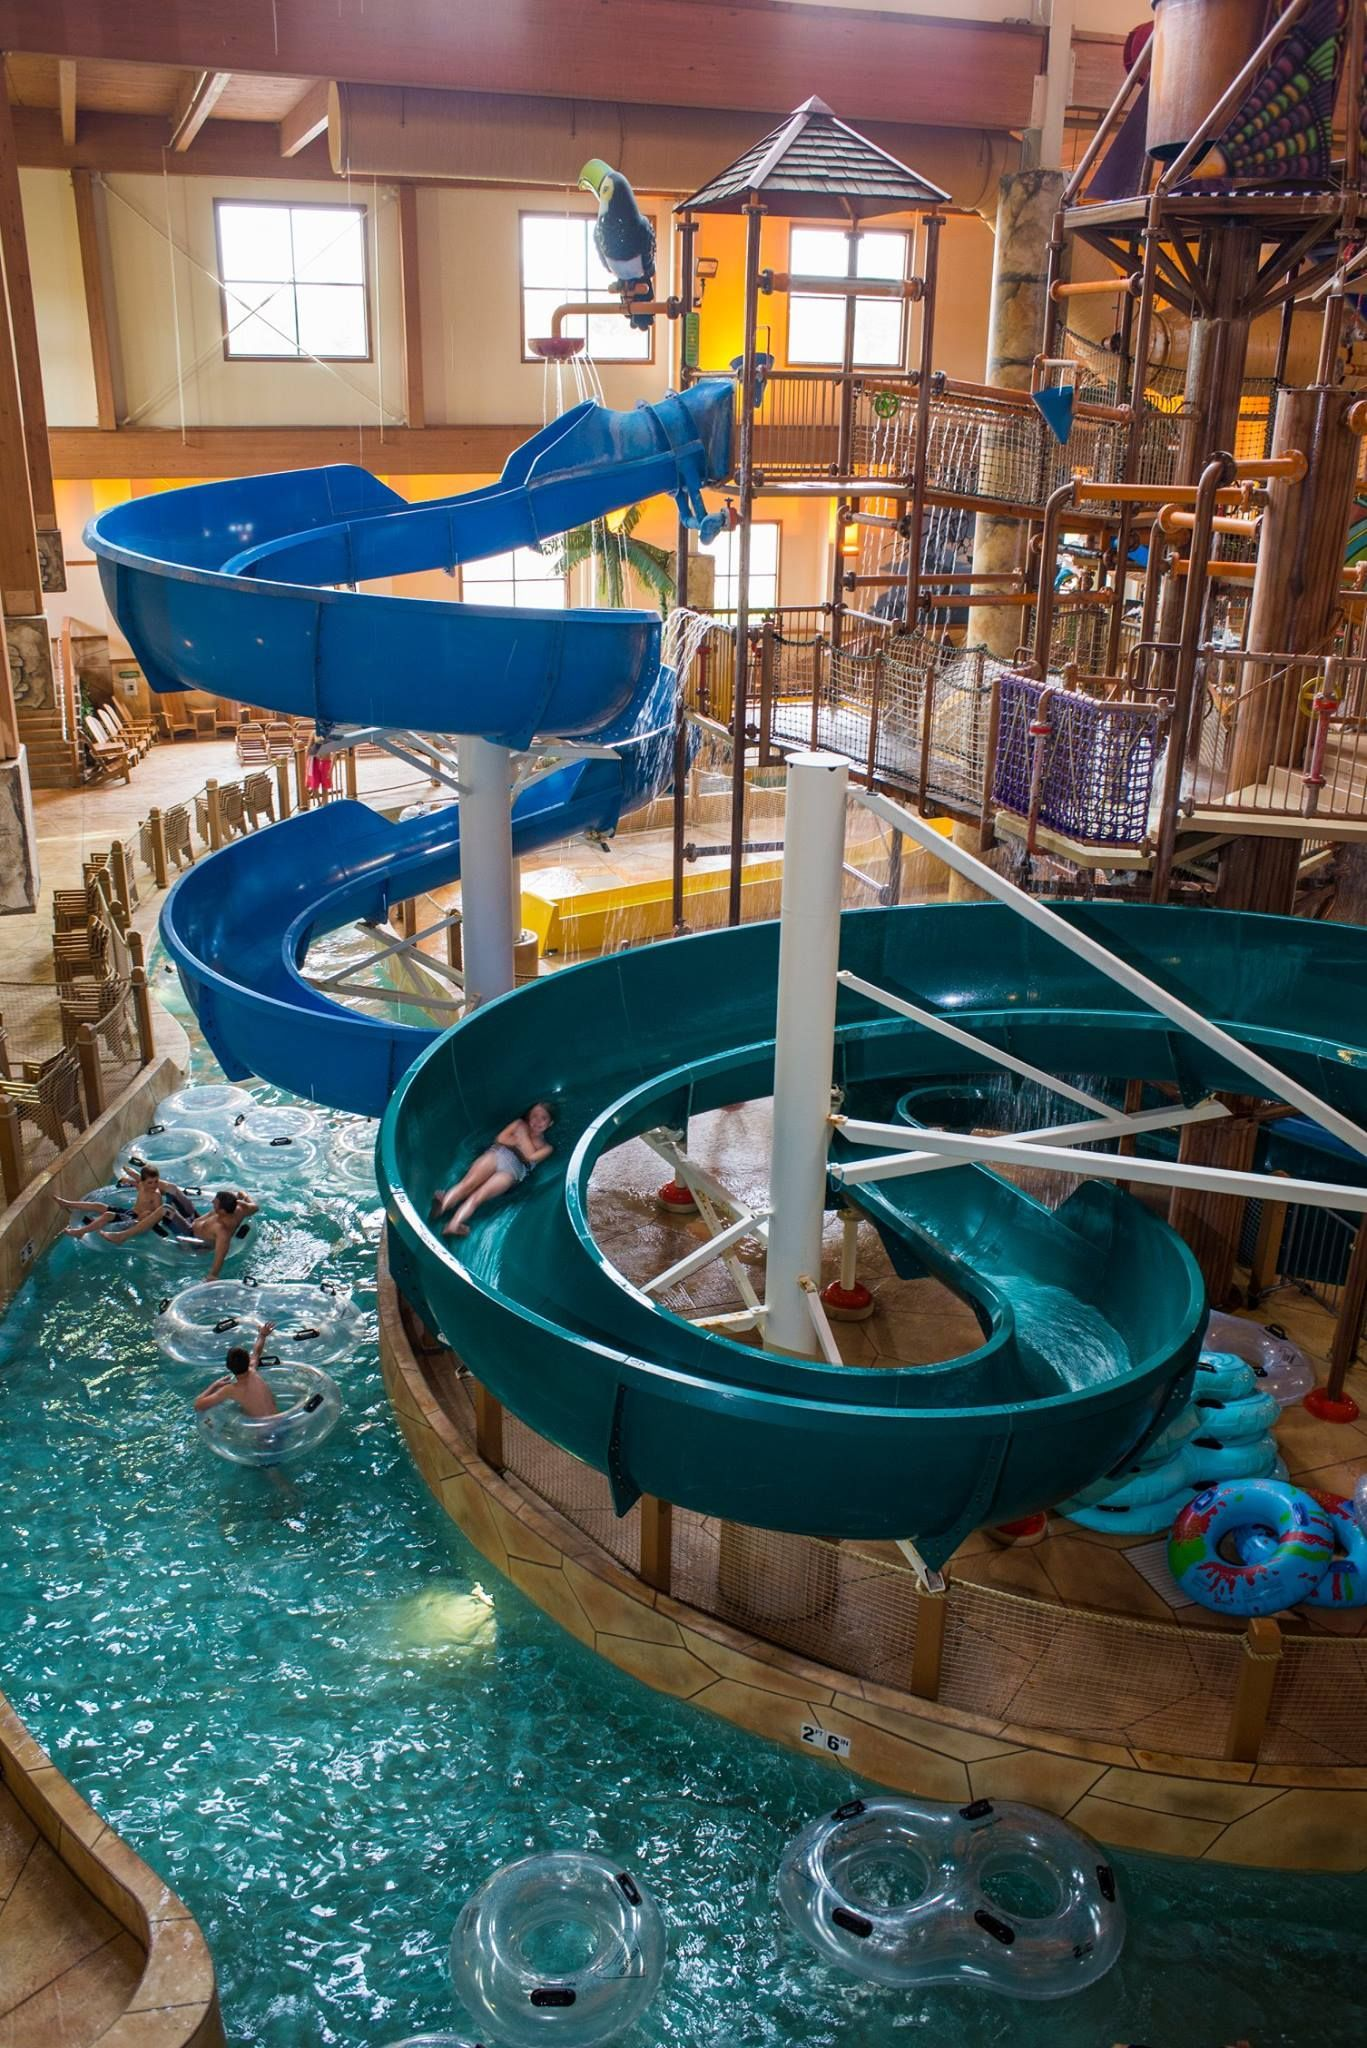 12 Affordable All Inclusive Resorts In The United States Inclusive Resorts Cheapest All Inclusive Resorts Kids Vacation